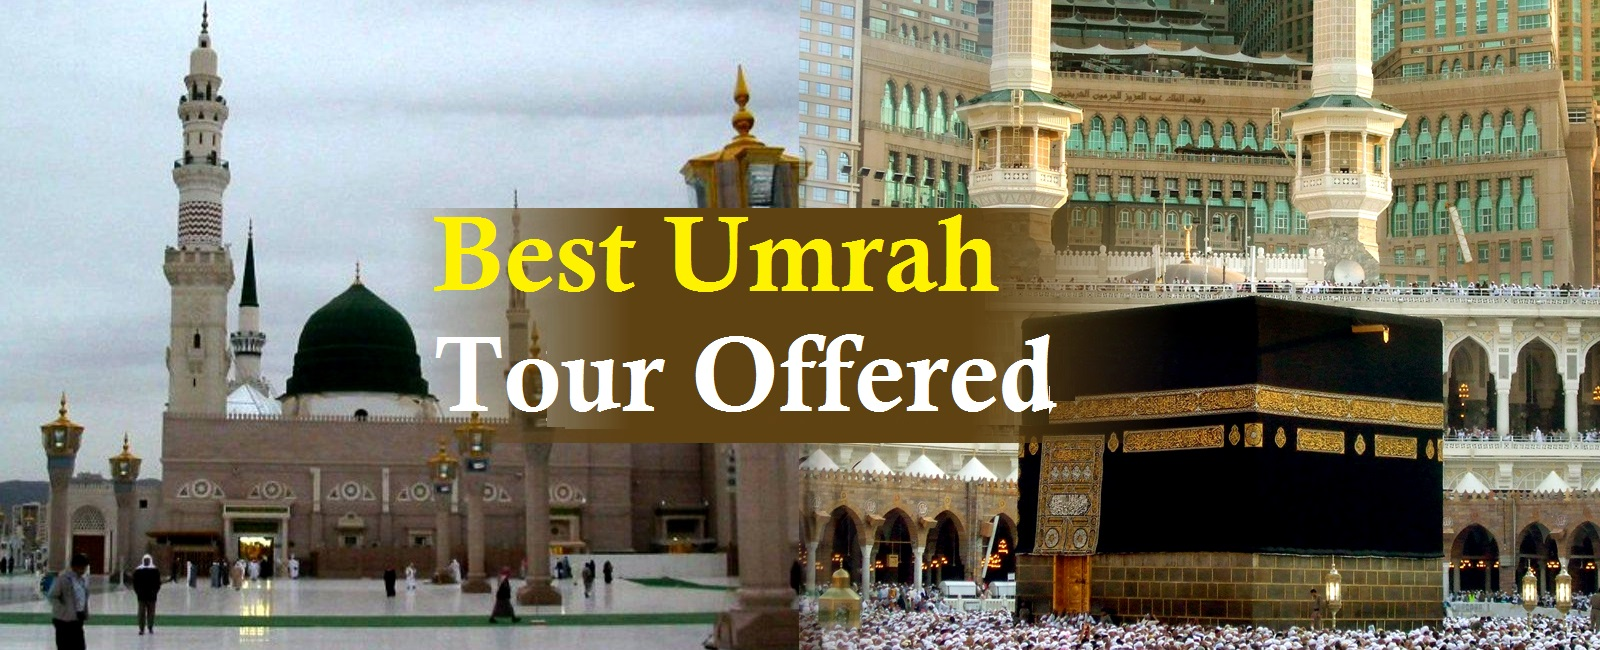 Best umrah tours offered from uk travel for umrah best umrah tour offered solutioingenieria Choice Image